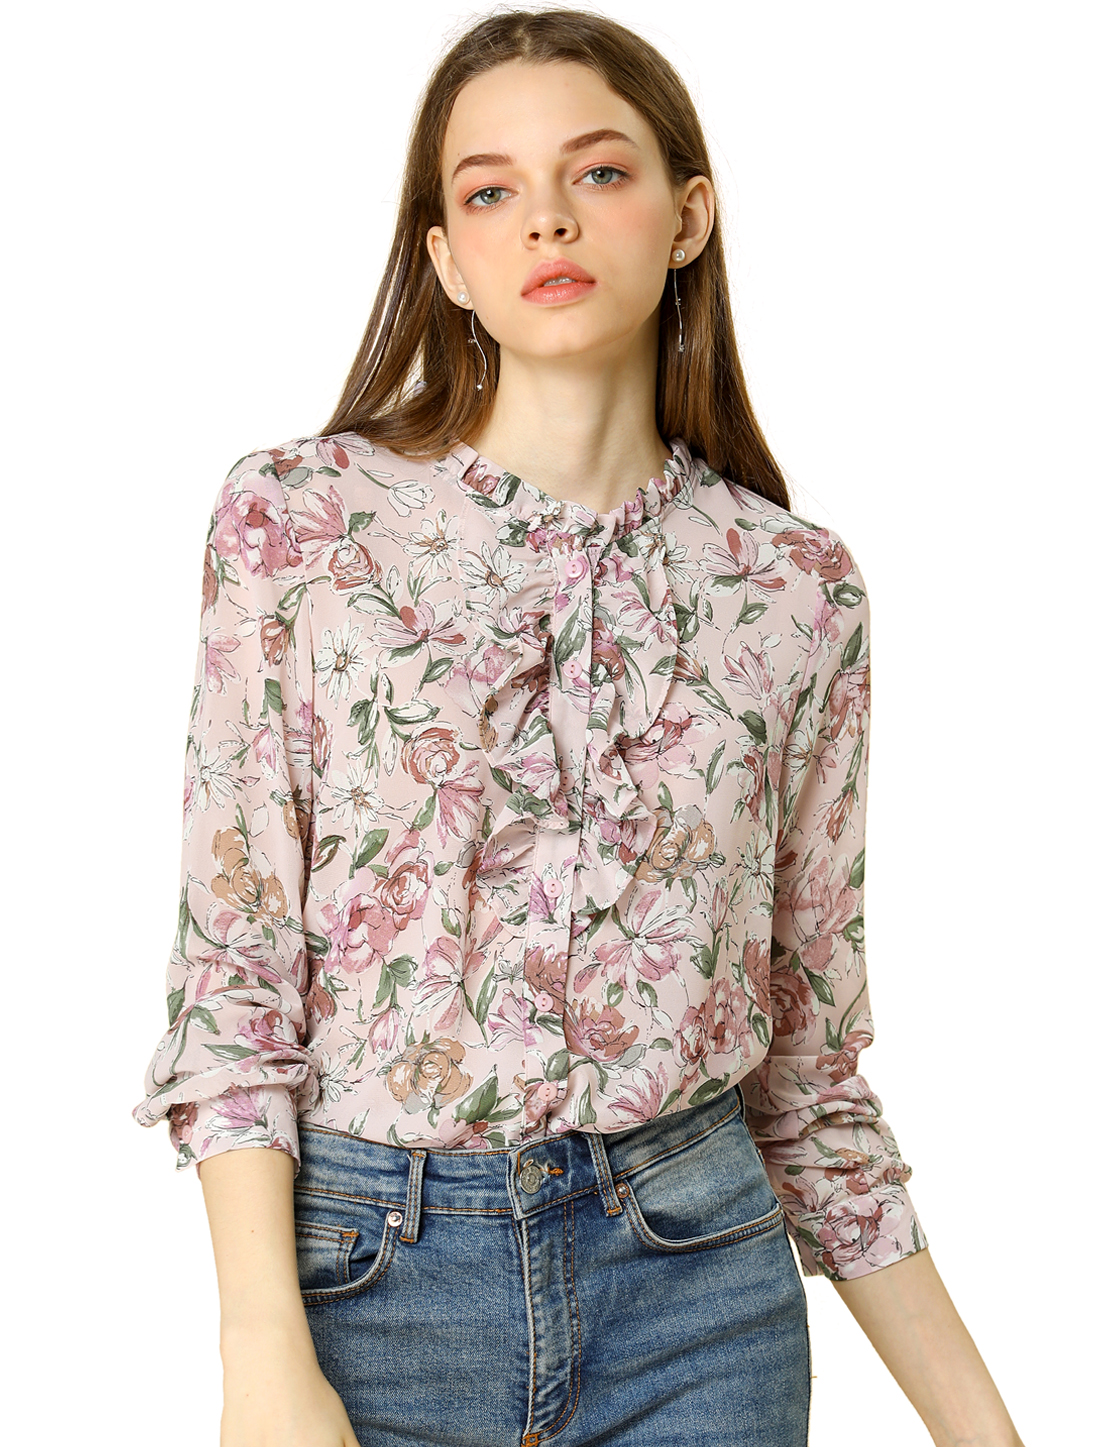 Women's Long Sleeve Ruffle Collar Button Down Floral Shirt Pink M (US 10)